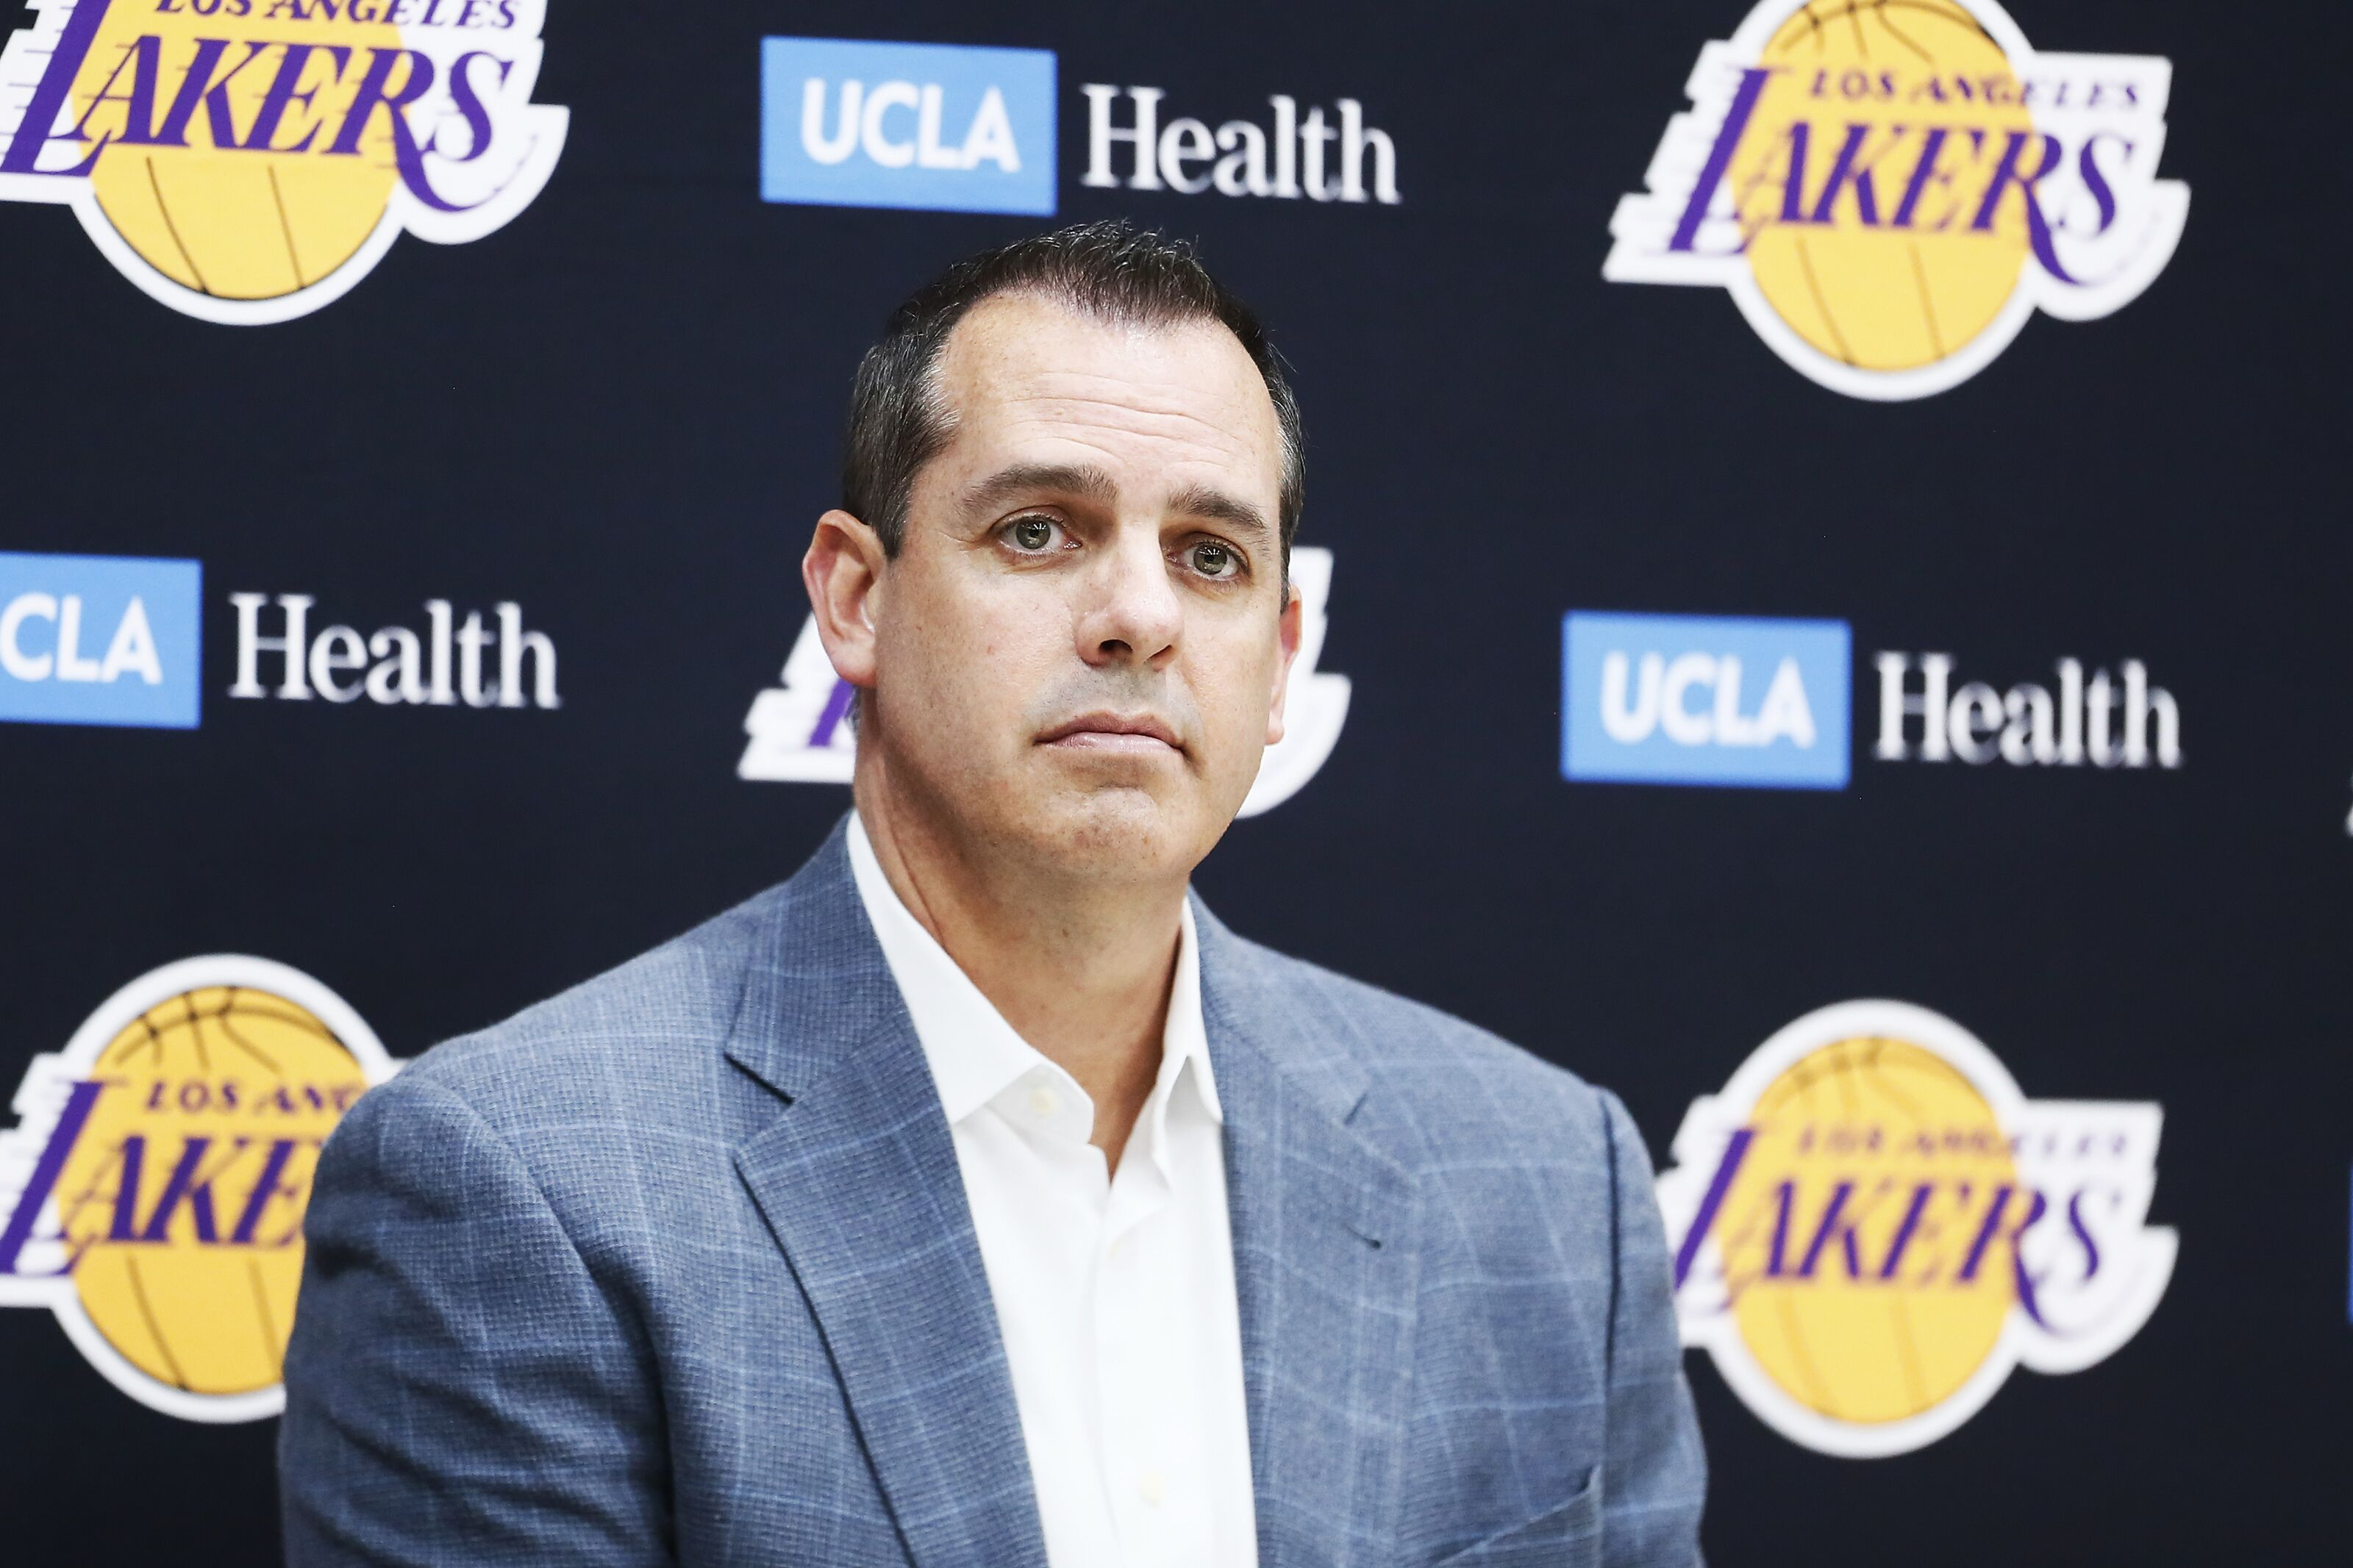 Los Angeles Lakers: Frank Vogel will be a Coach of the Year candidate